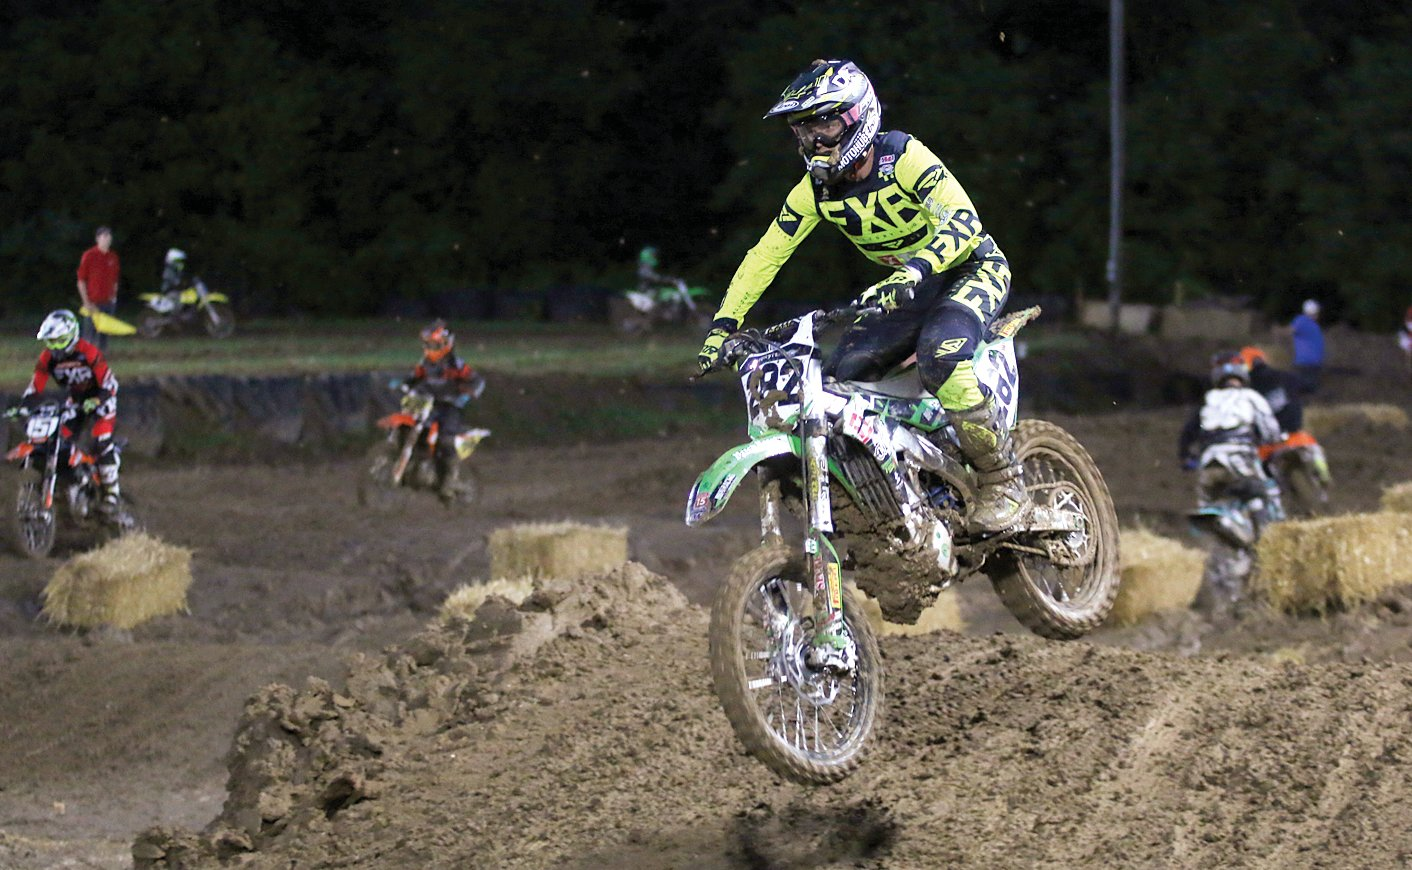 "Edwardsville pro Theodore ""Bubba"" Pauli was dominant in the 250 and 450 pro classes at the Montgomery County Fair motocross event on Friday, June 21. Pauli, who has helped train several local riders, won all four races in which he participated."